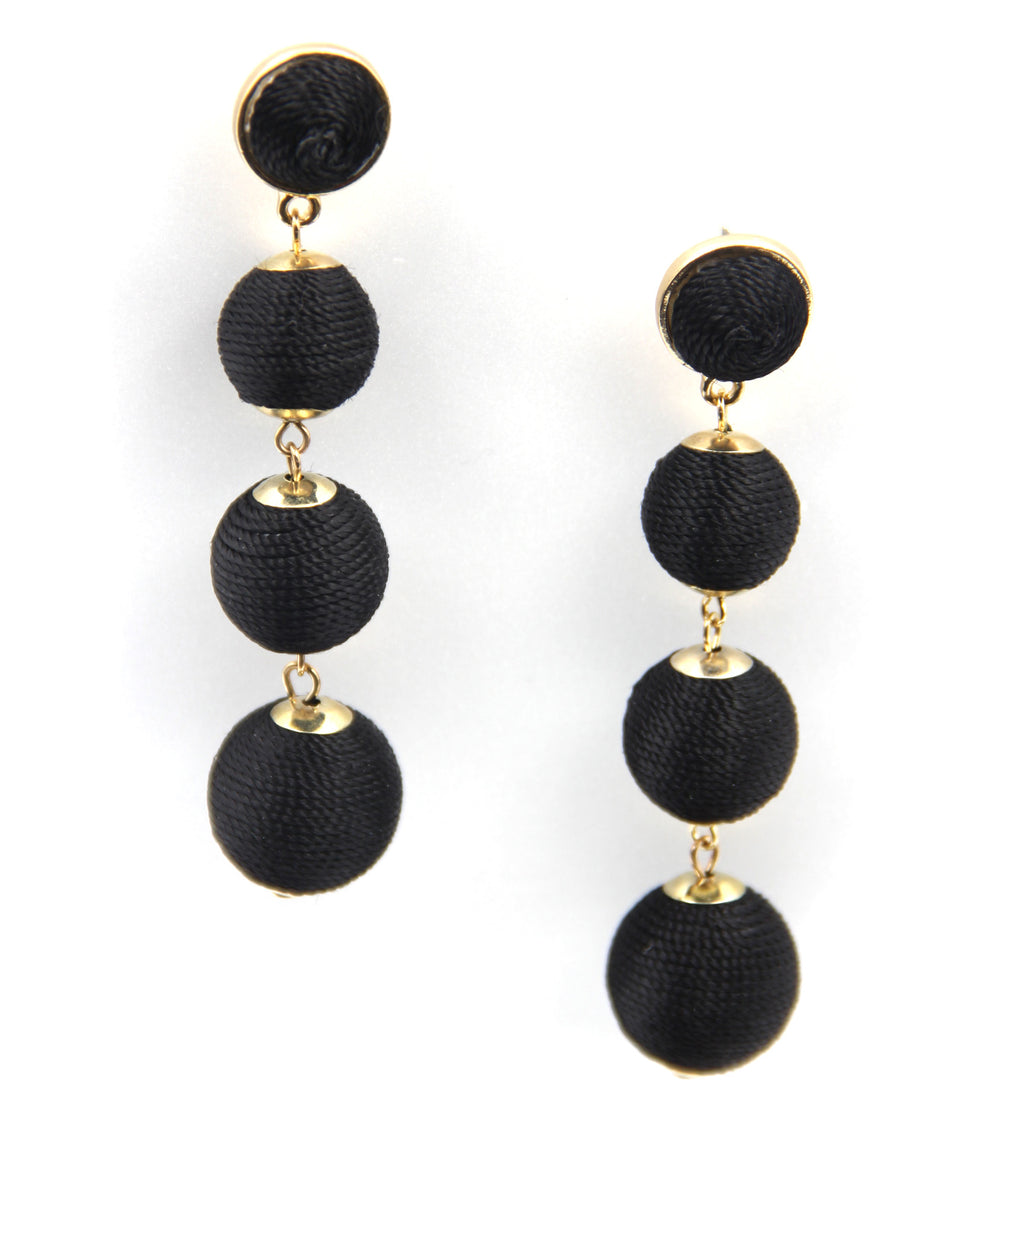 Drop Ball Earrings in Black. Pendants d'oreilles à sphères en noire